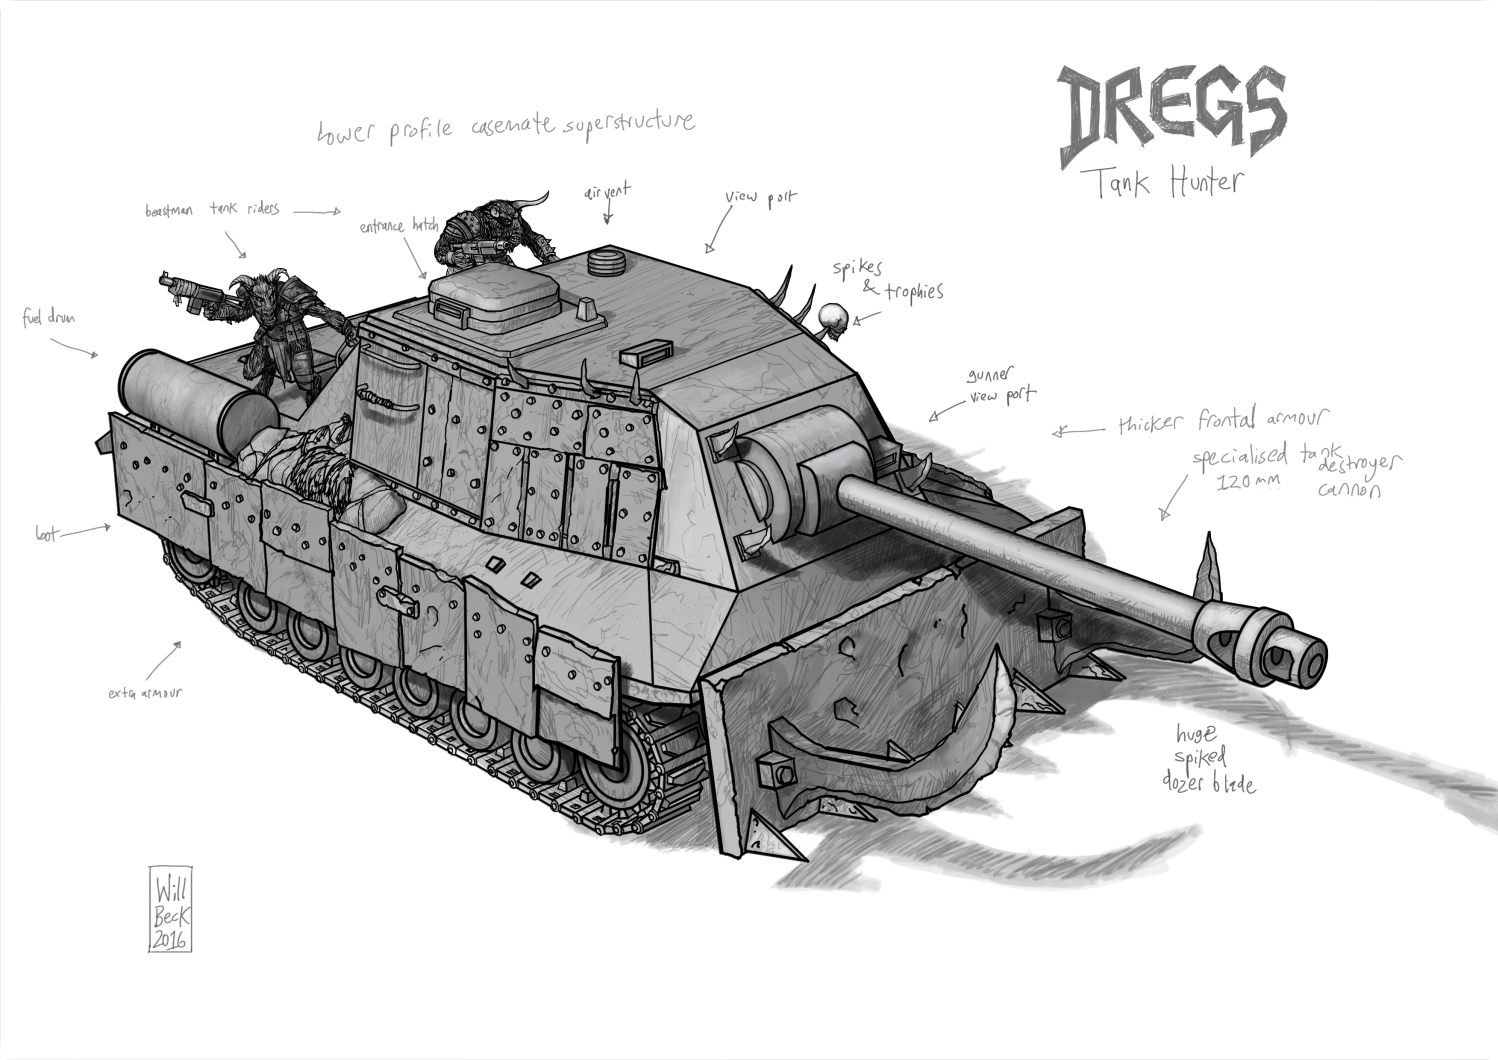 Dregs Tank Hunter